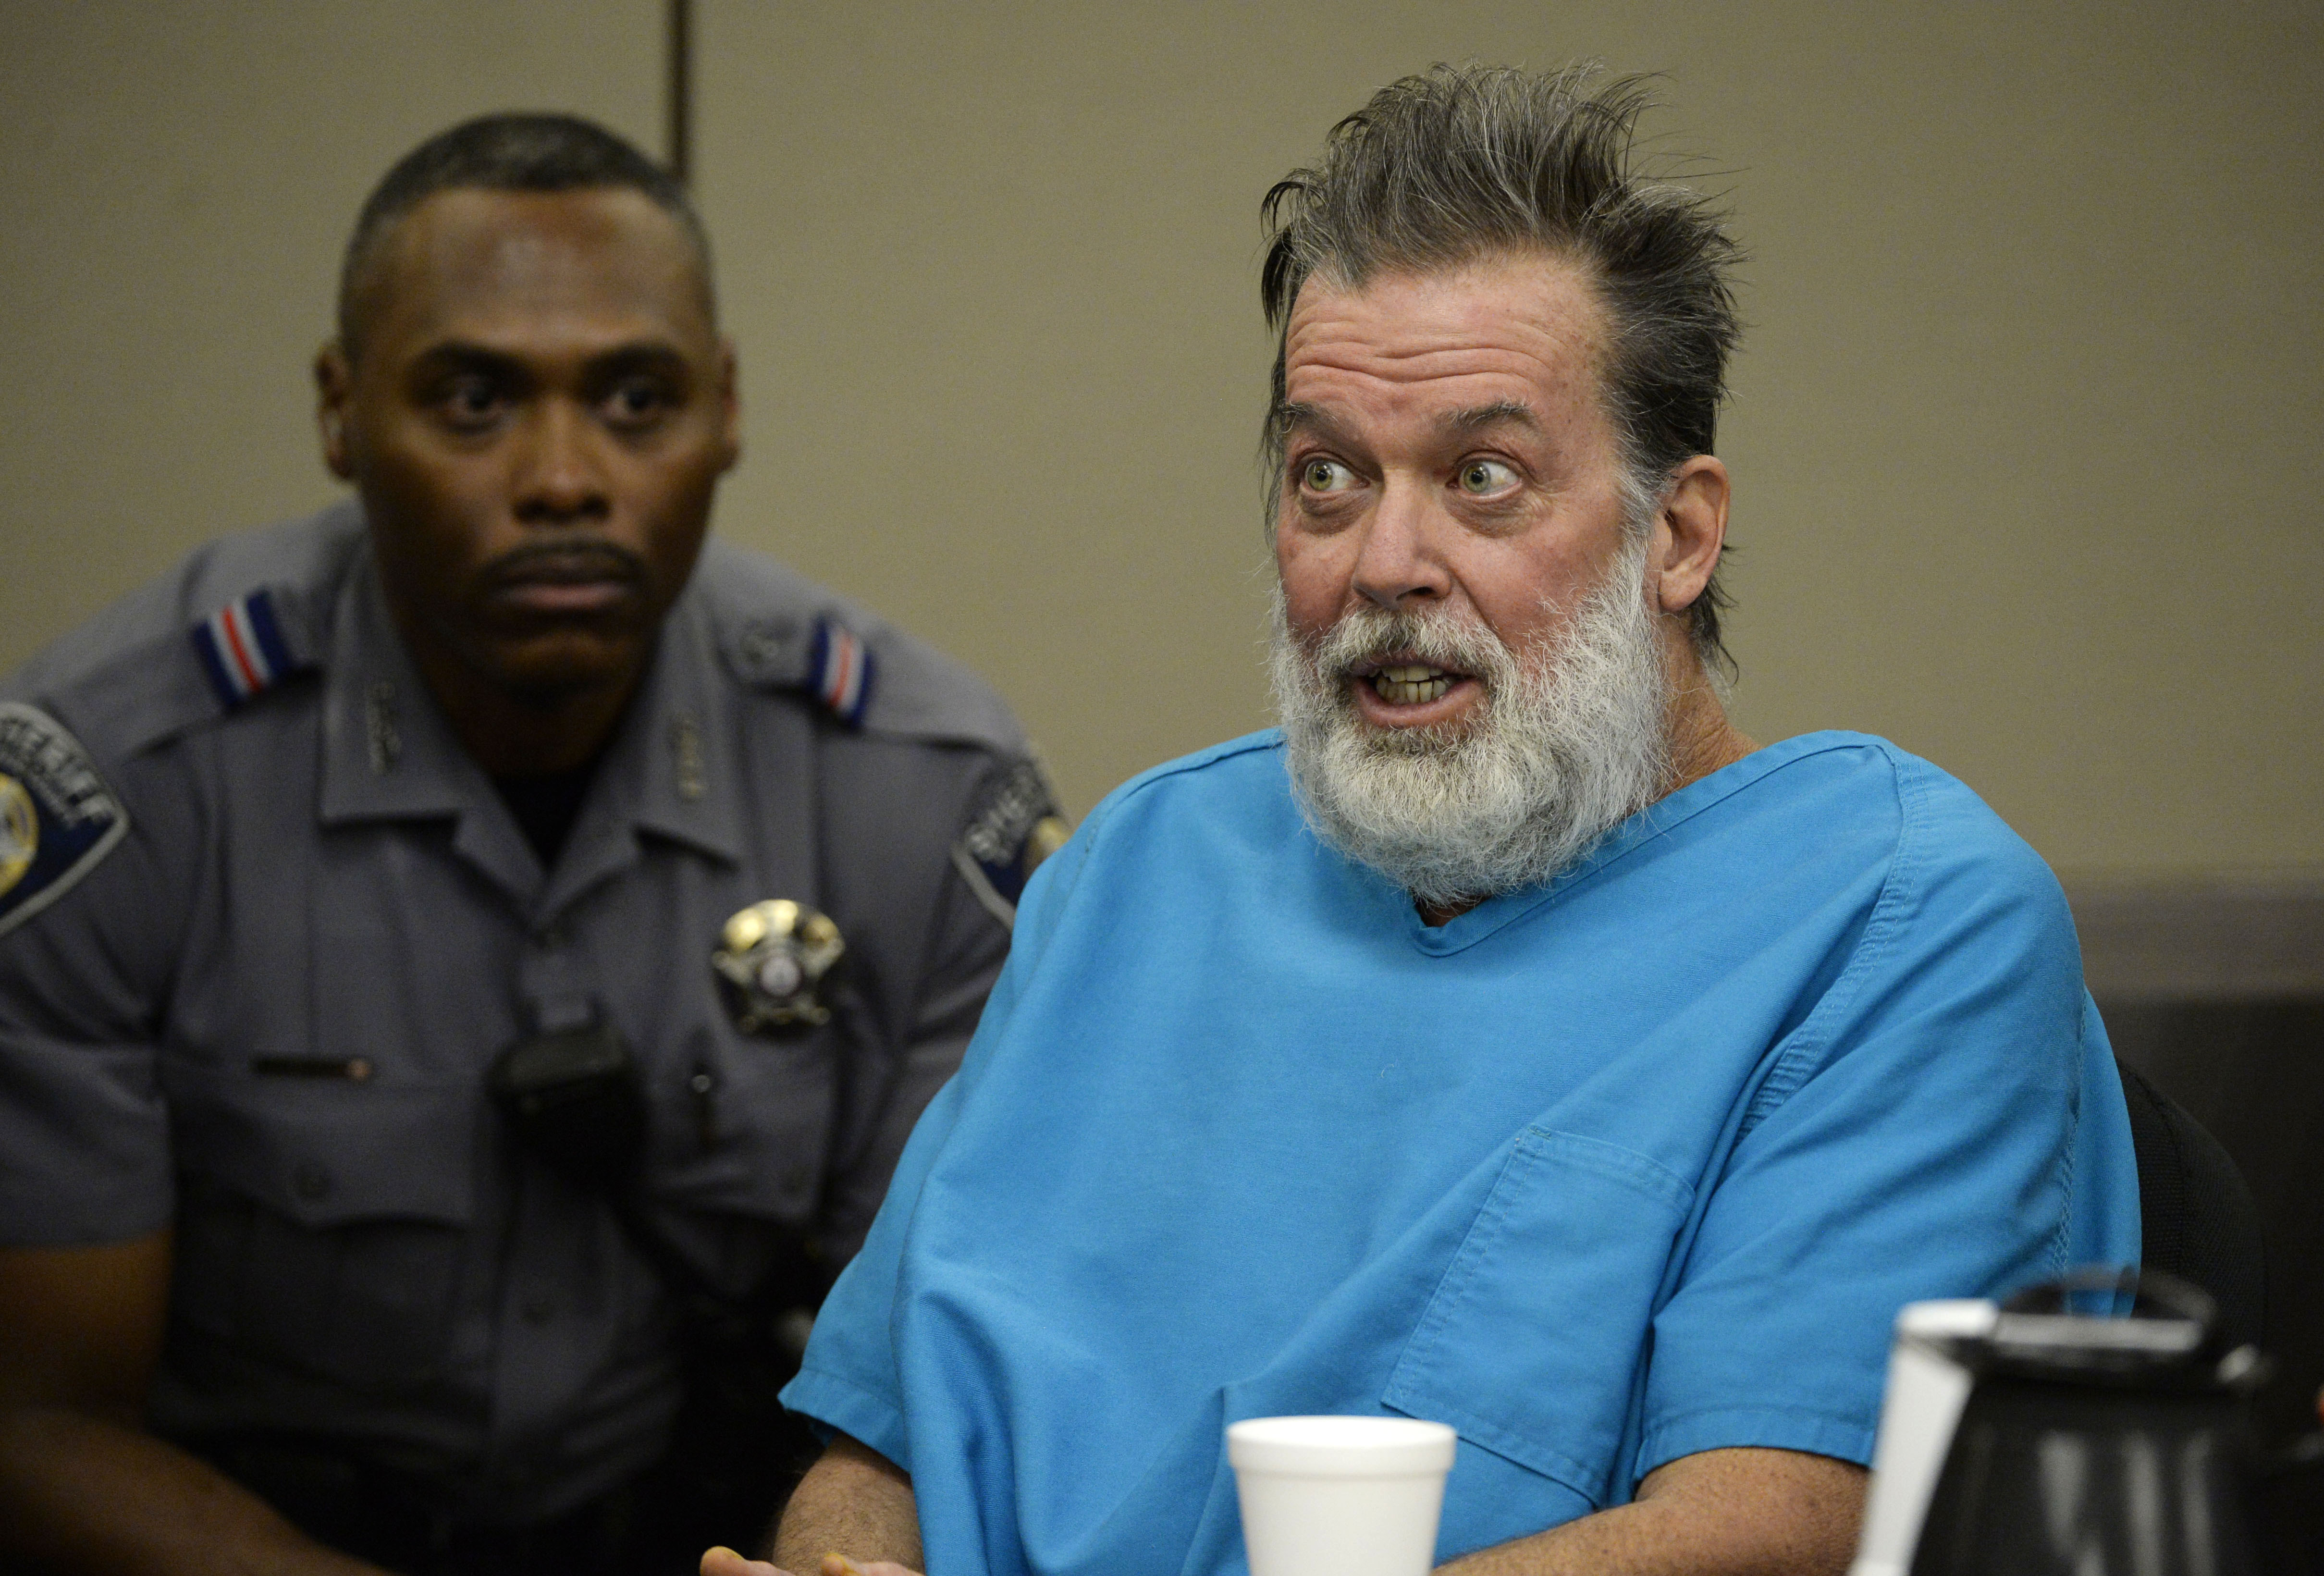 , 'I'm just a religious zealot': Man Accused of Mass Shooting at Planned Parenthood Wants to Represent Himself at Trial, Saubio Making Wealth